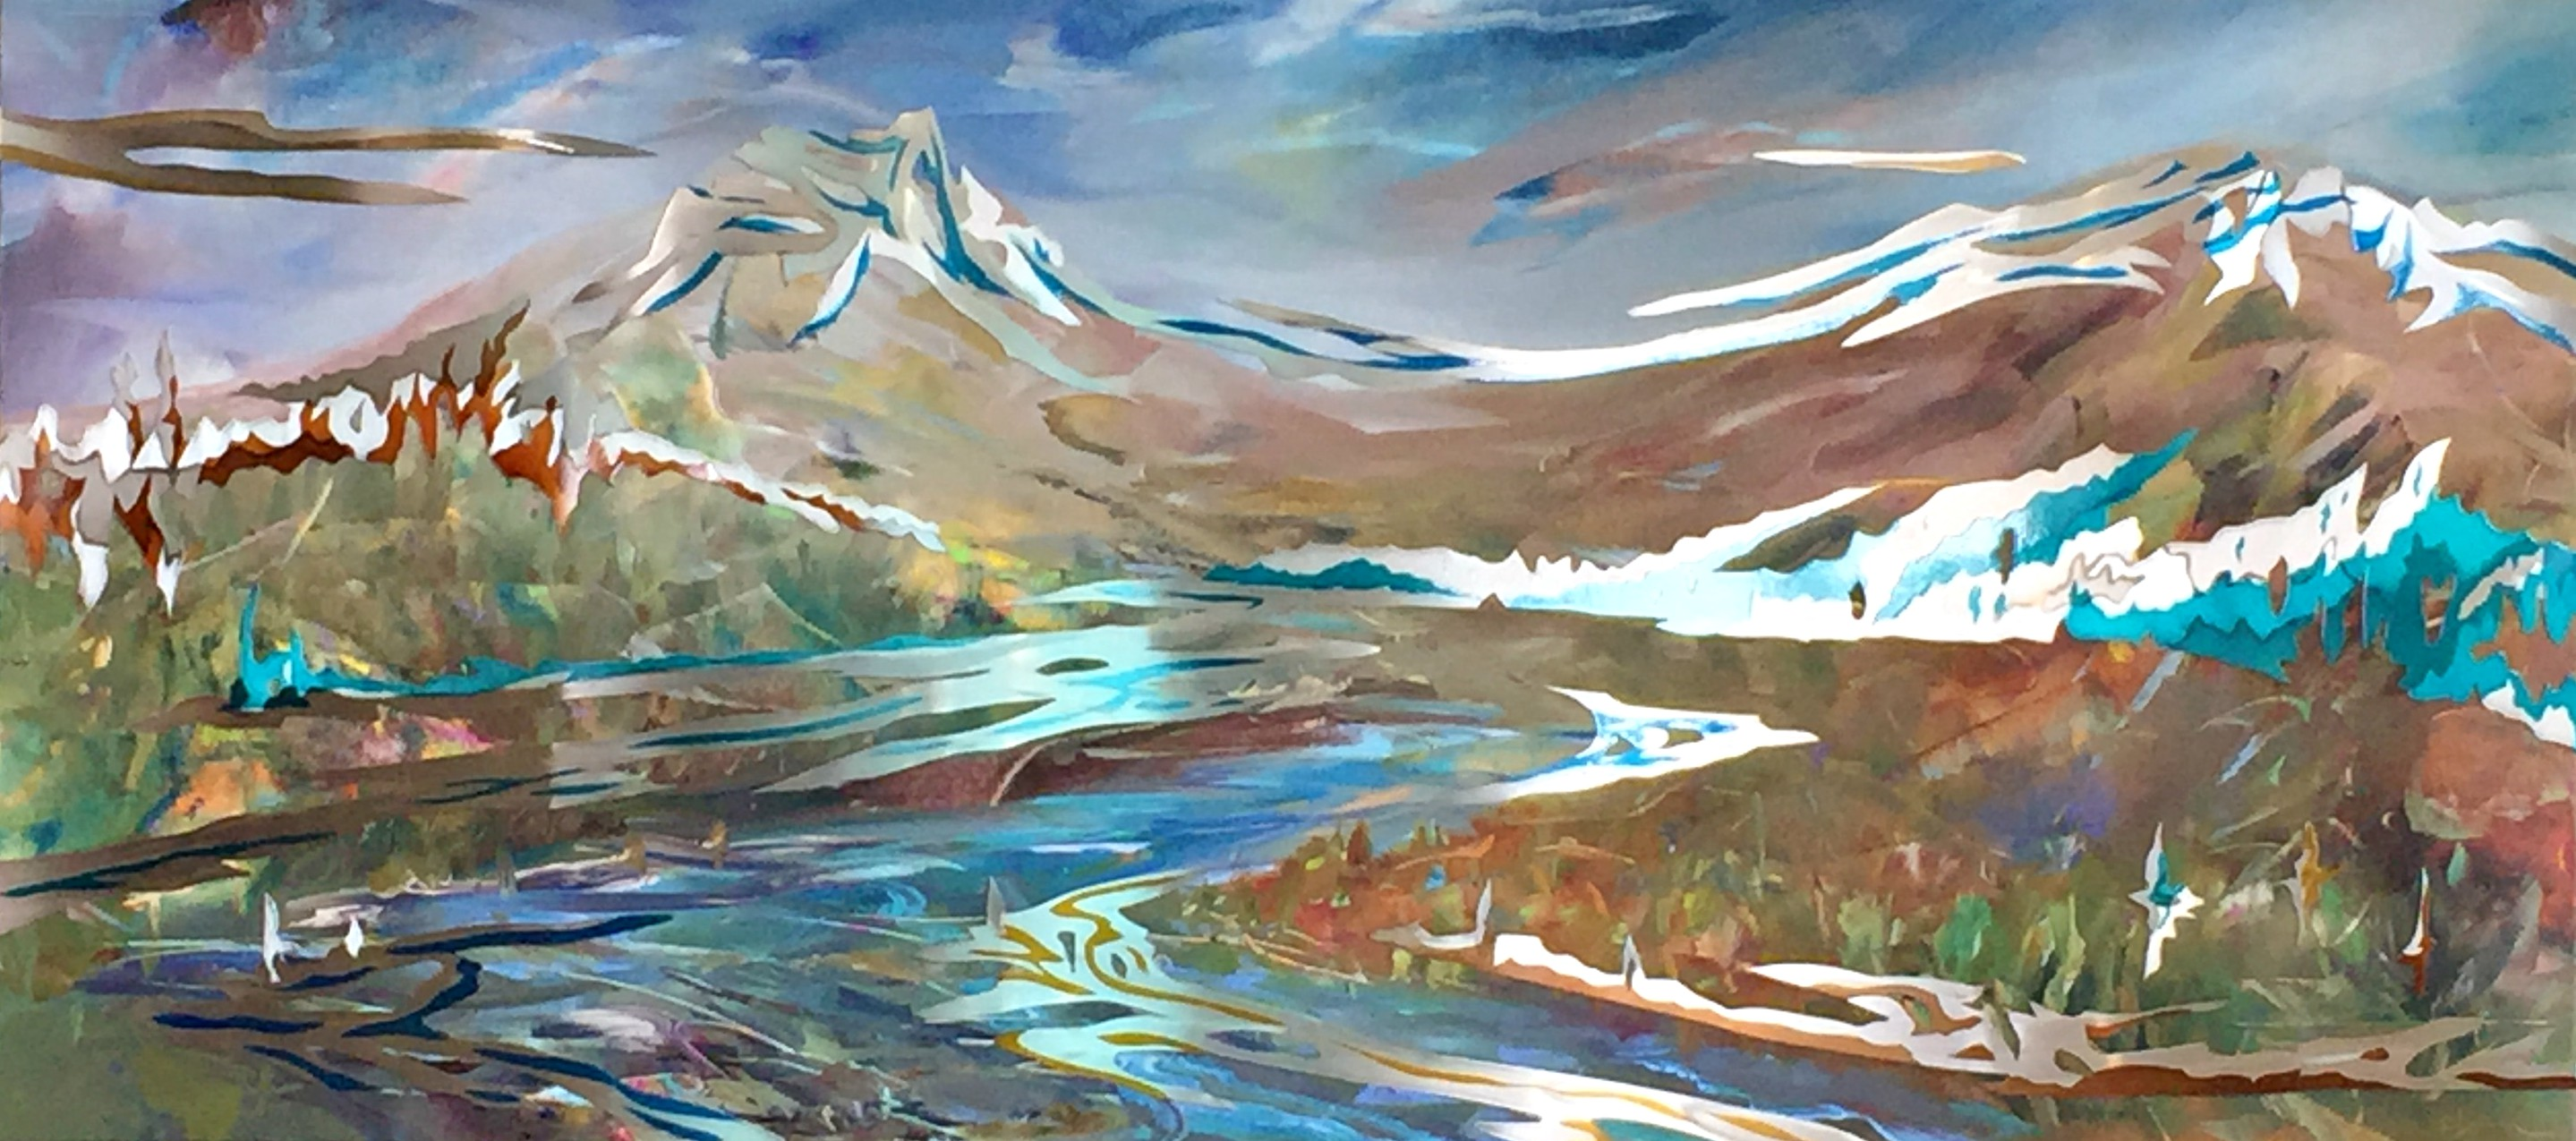 Cascade Light, mixed media painting by Joel Masewich | Effusion Art Gallery + Cast Glass Studio, Invermere BC